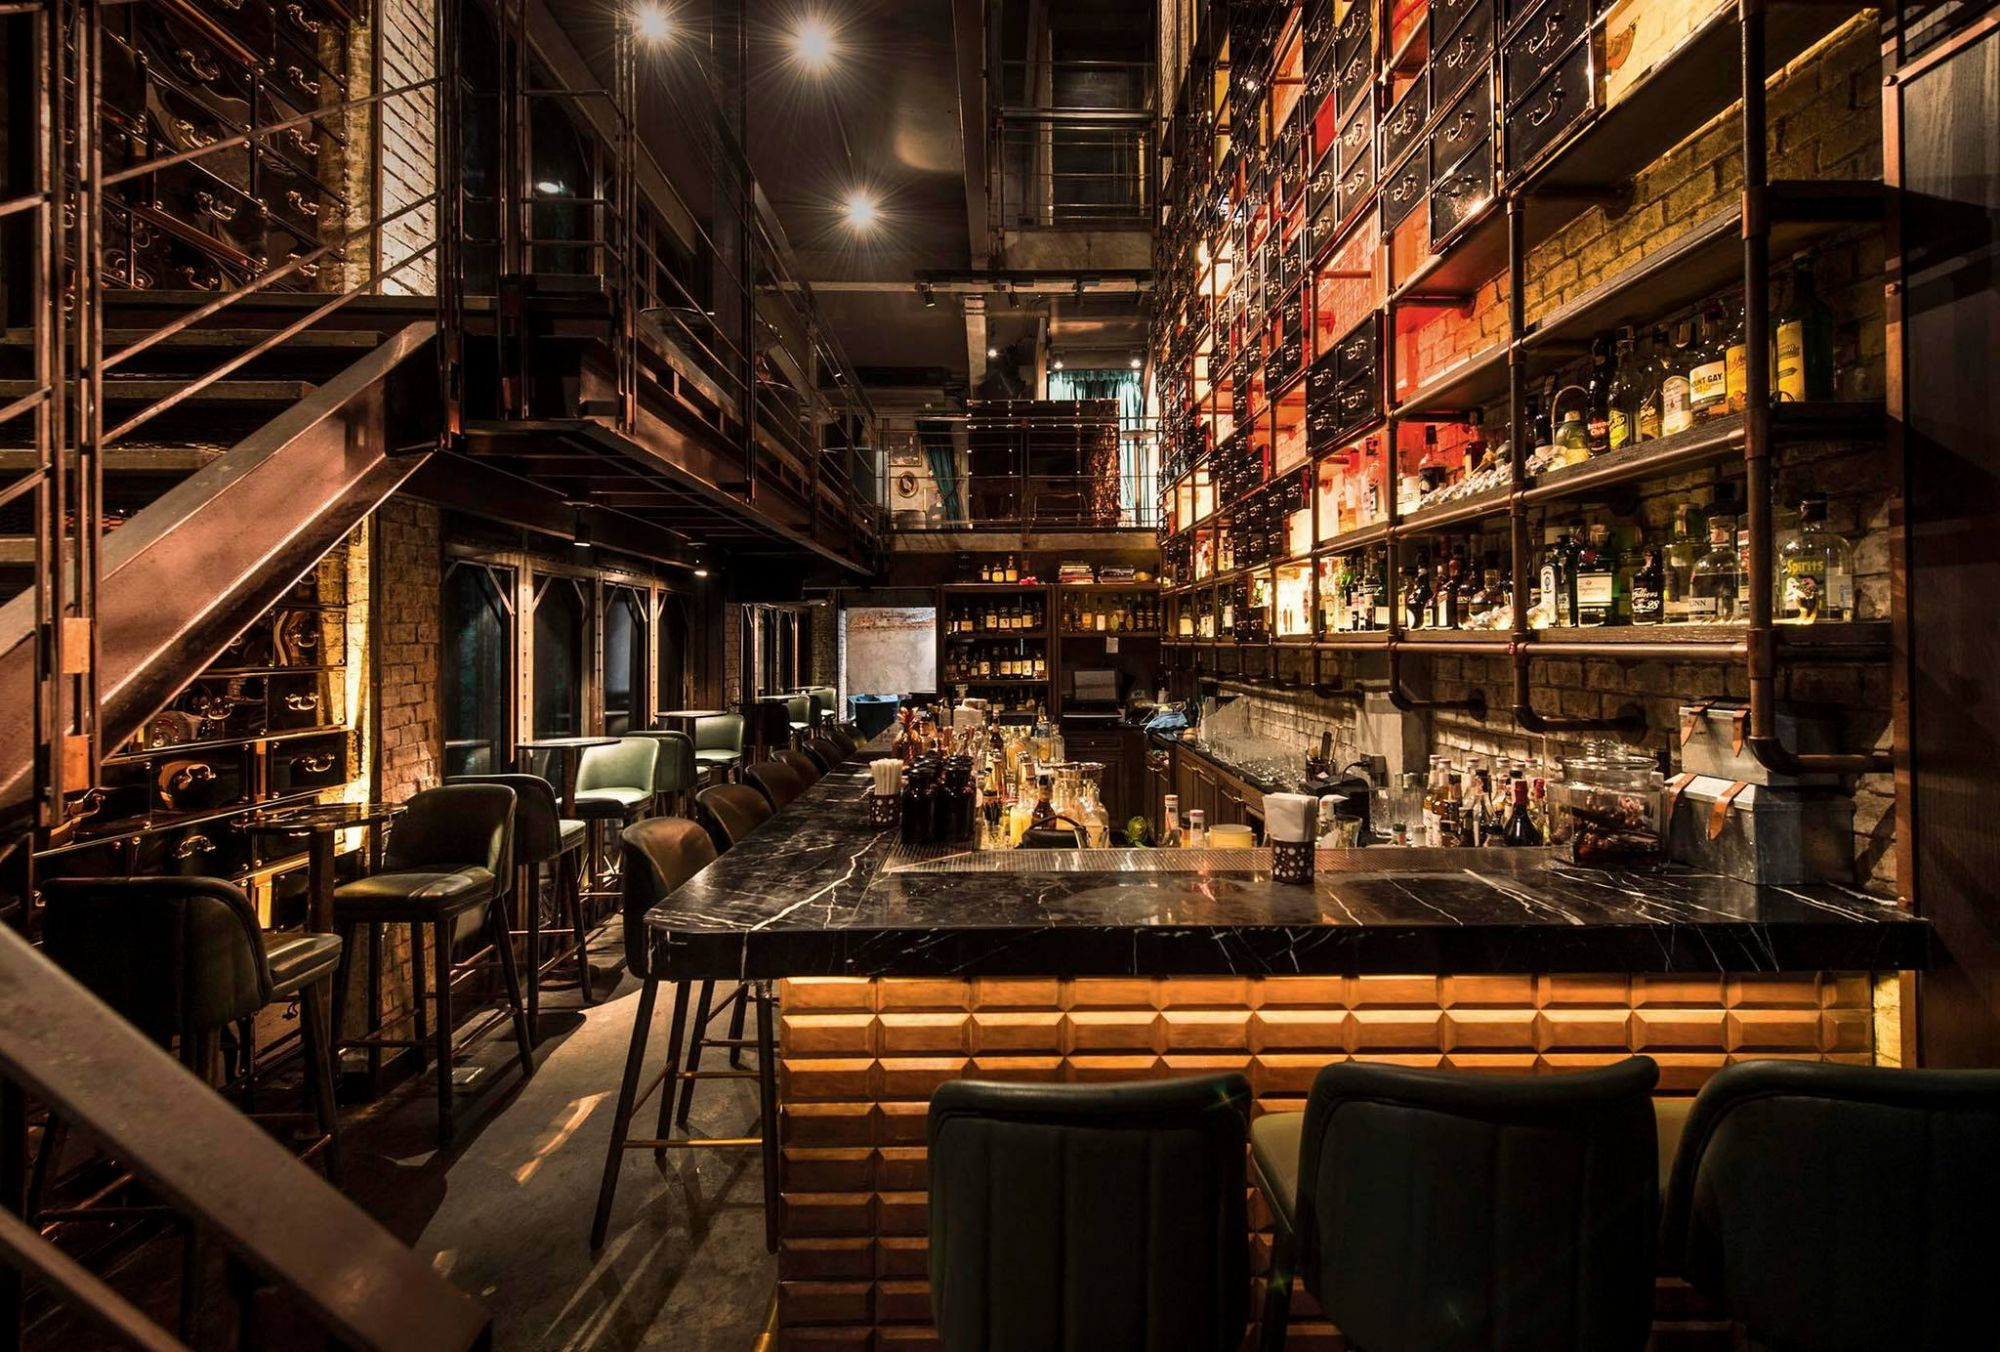 100 Years Later, The Revival of Speakeasies And All They Stand For